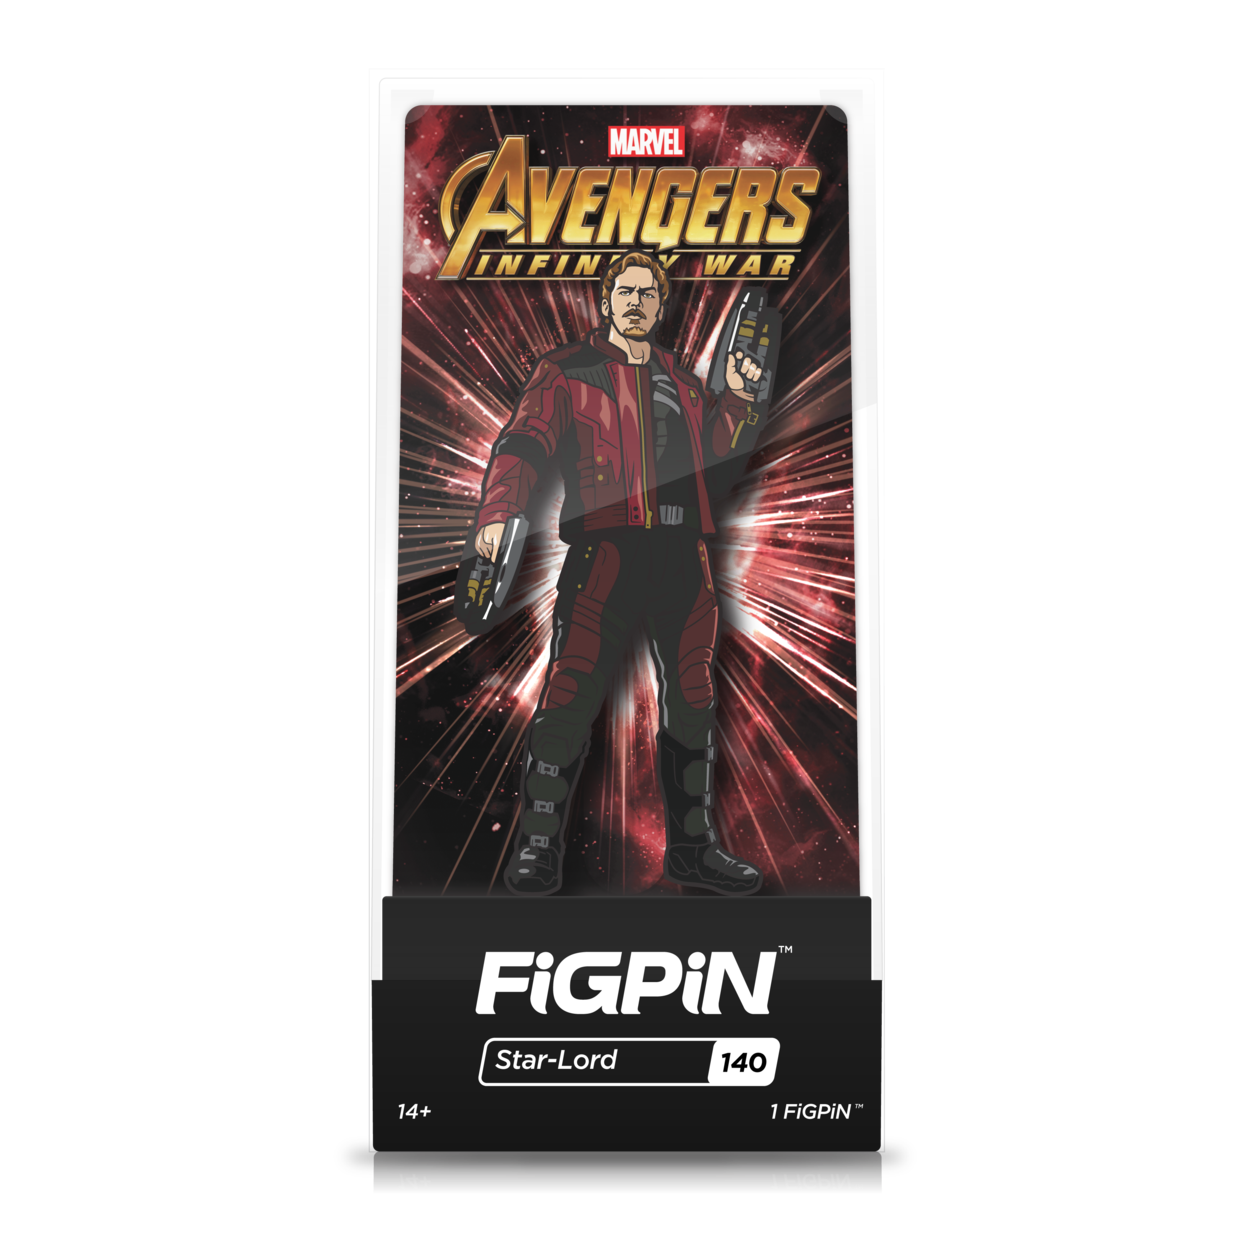 Avengers Infinity War: FiGPiN Enamel Pin Starlord [140] - Fugitive Toys